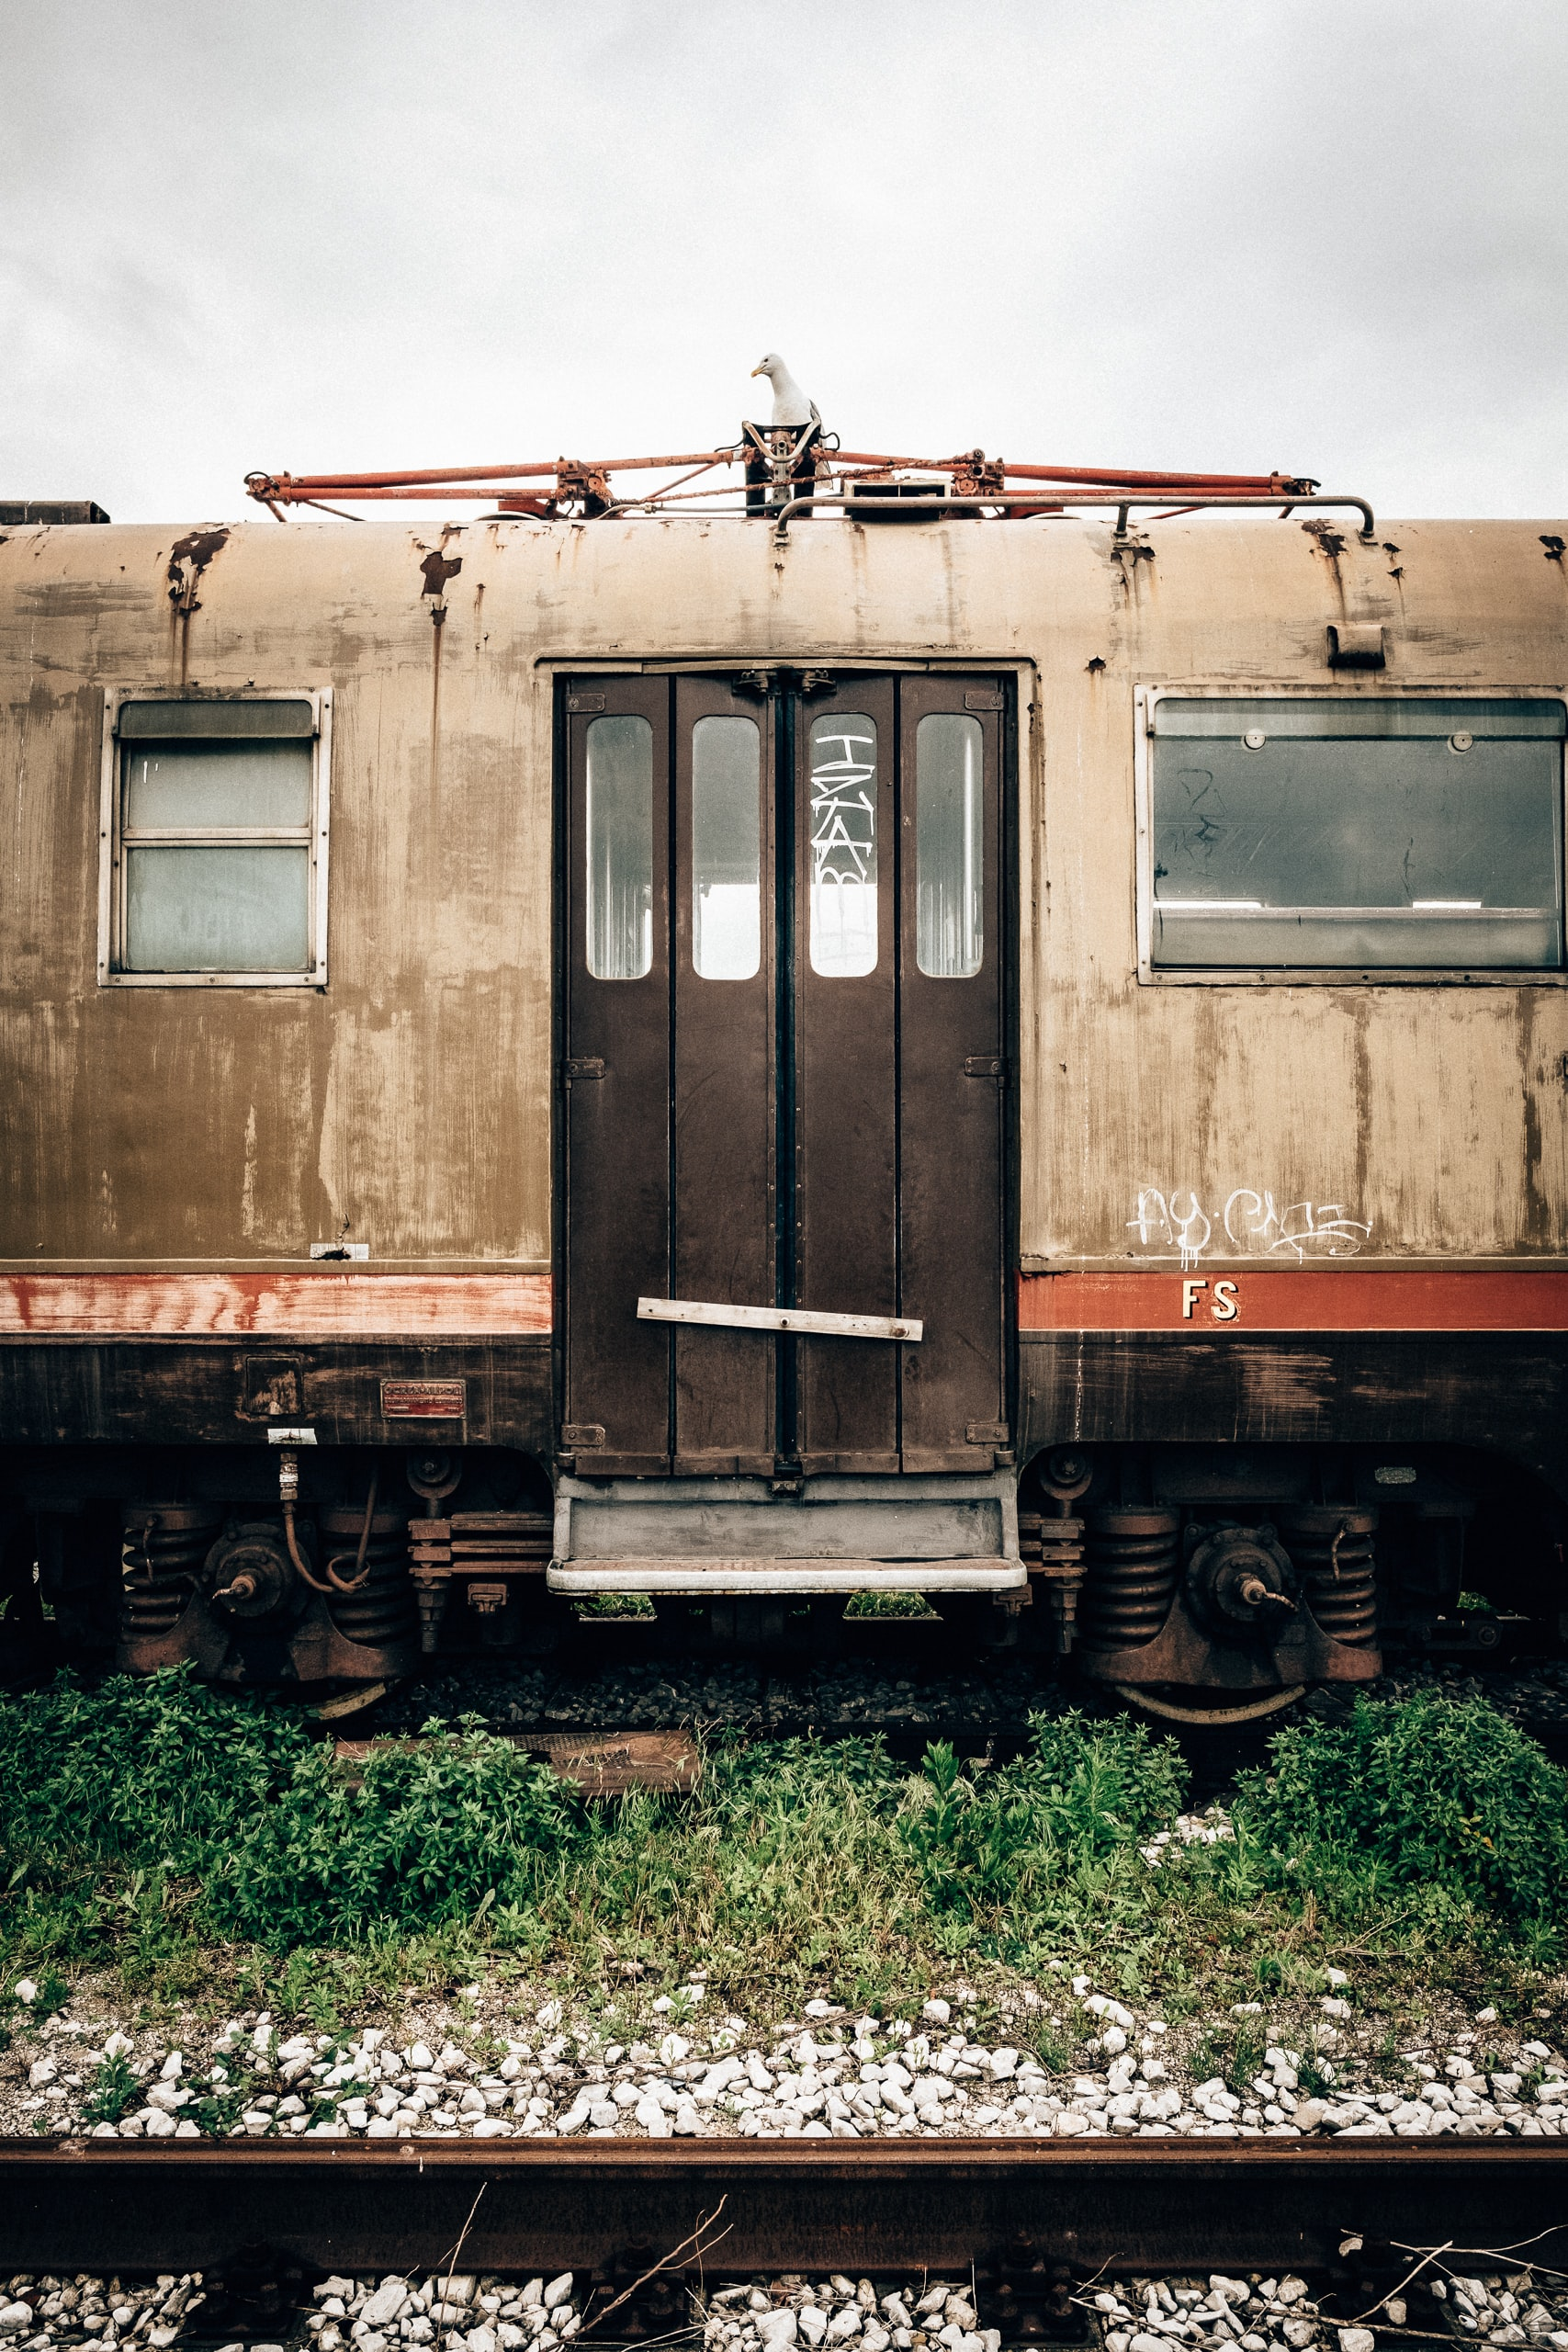 brown and black abandoned train on rail during daytime